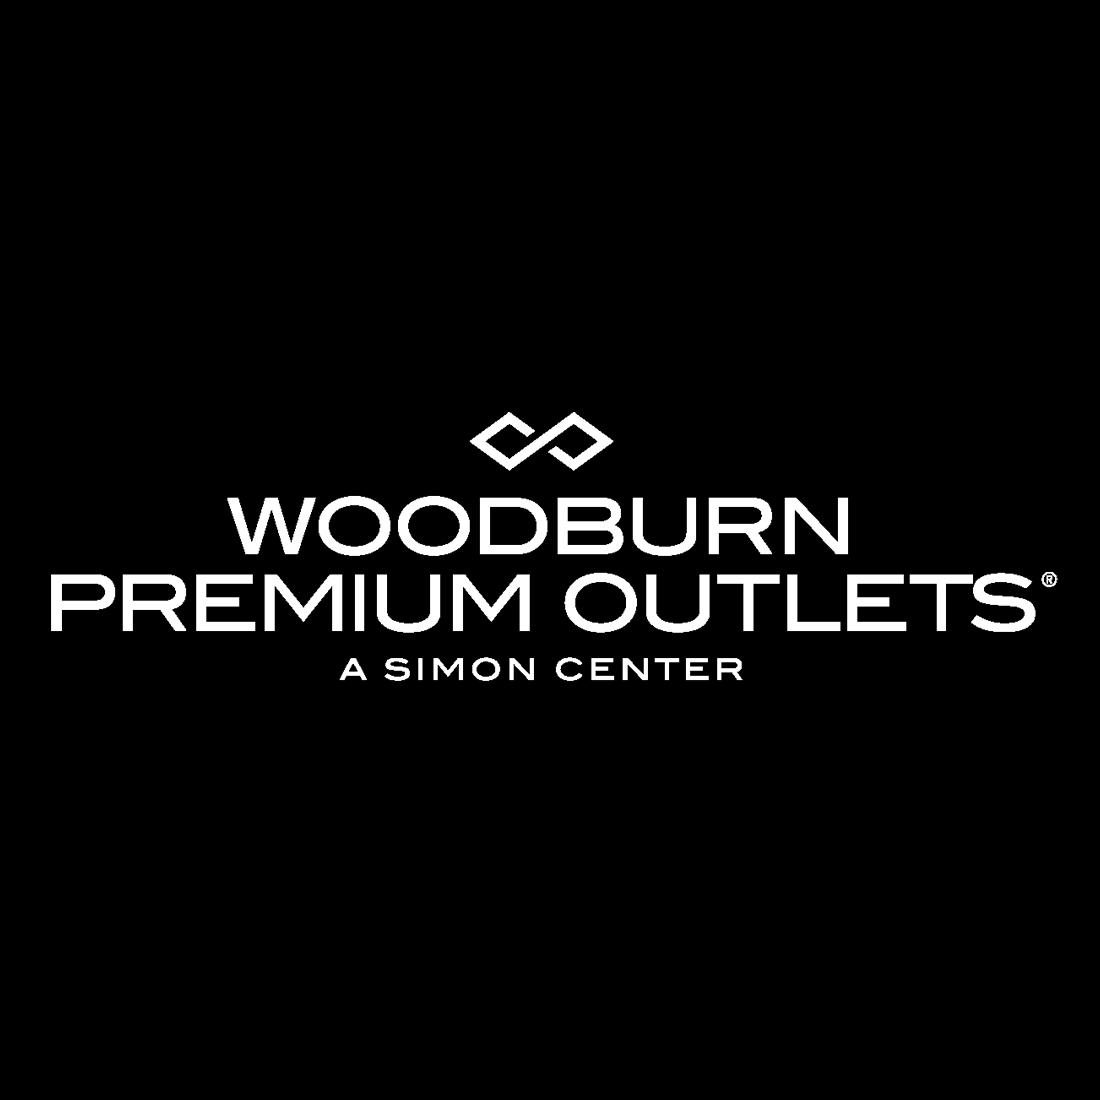 Woodburn Premium Outlets - Woodburn, OR - Factory Outlet Stores